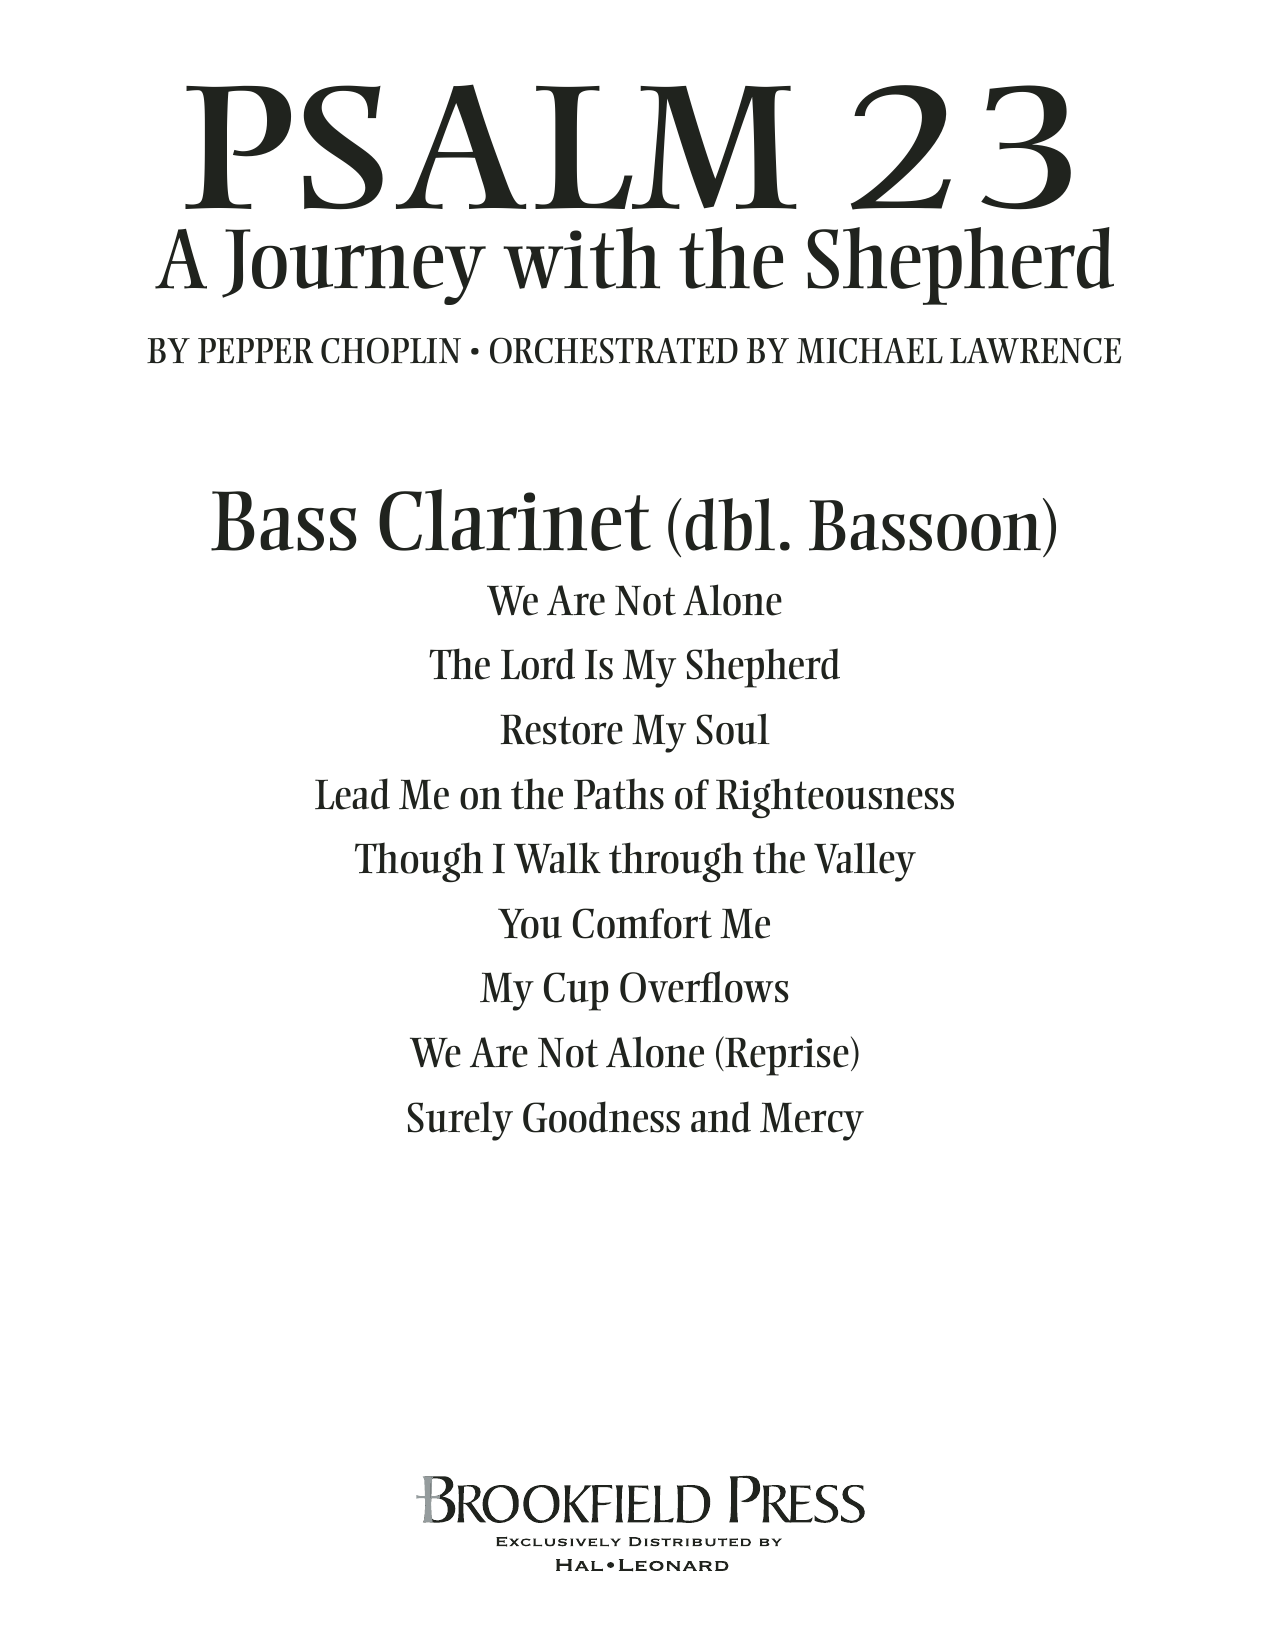 Psalm 23 - A Journey With The Shepherd - Bass Clarinet (sub. Bassoon) Partition Digitale